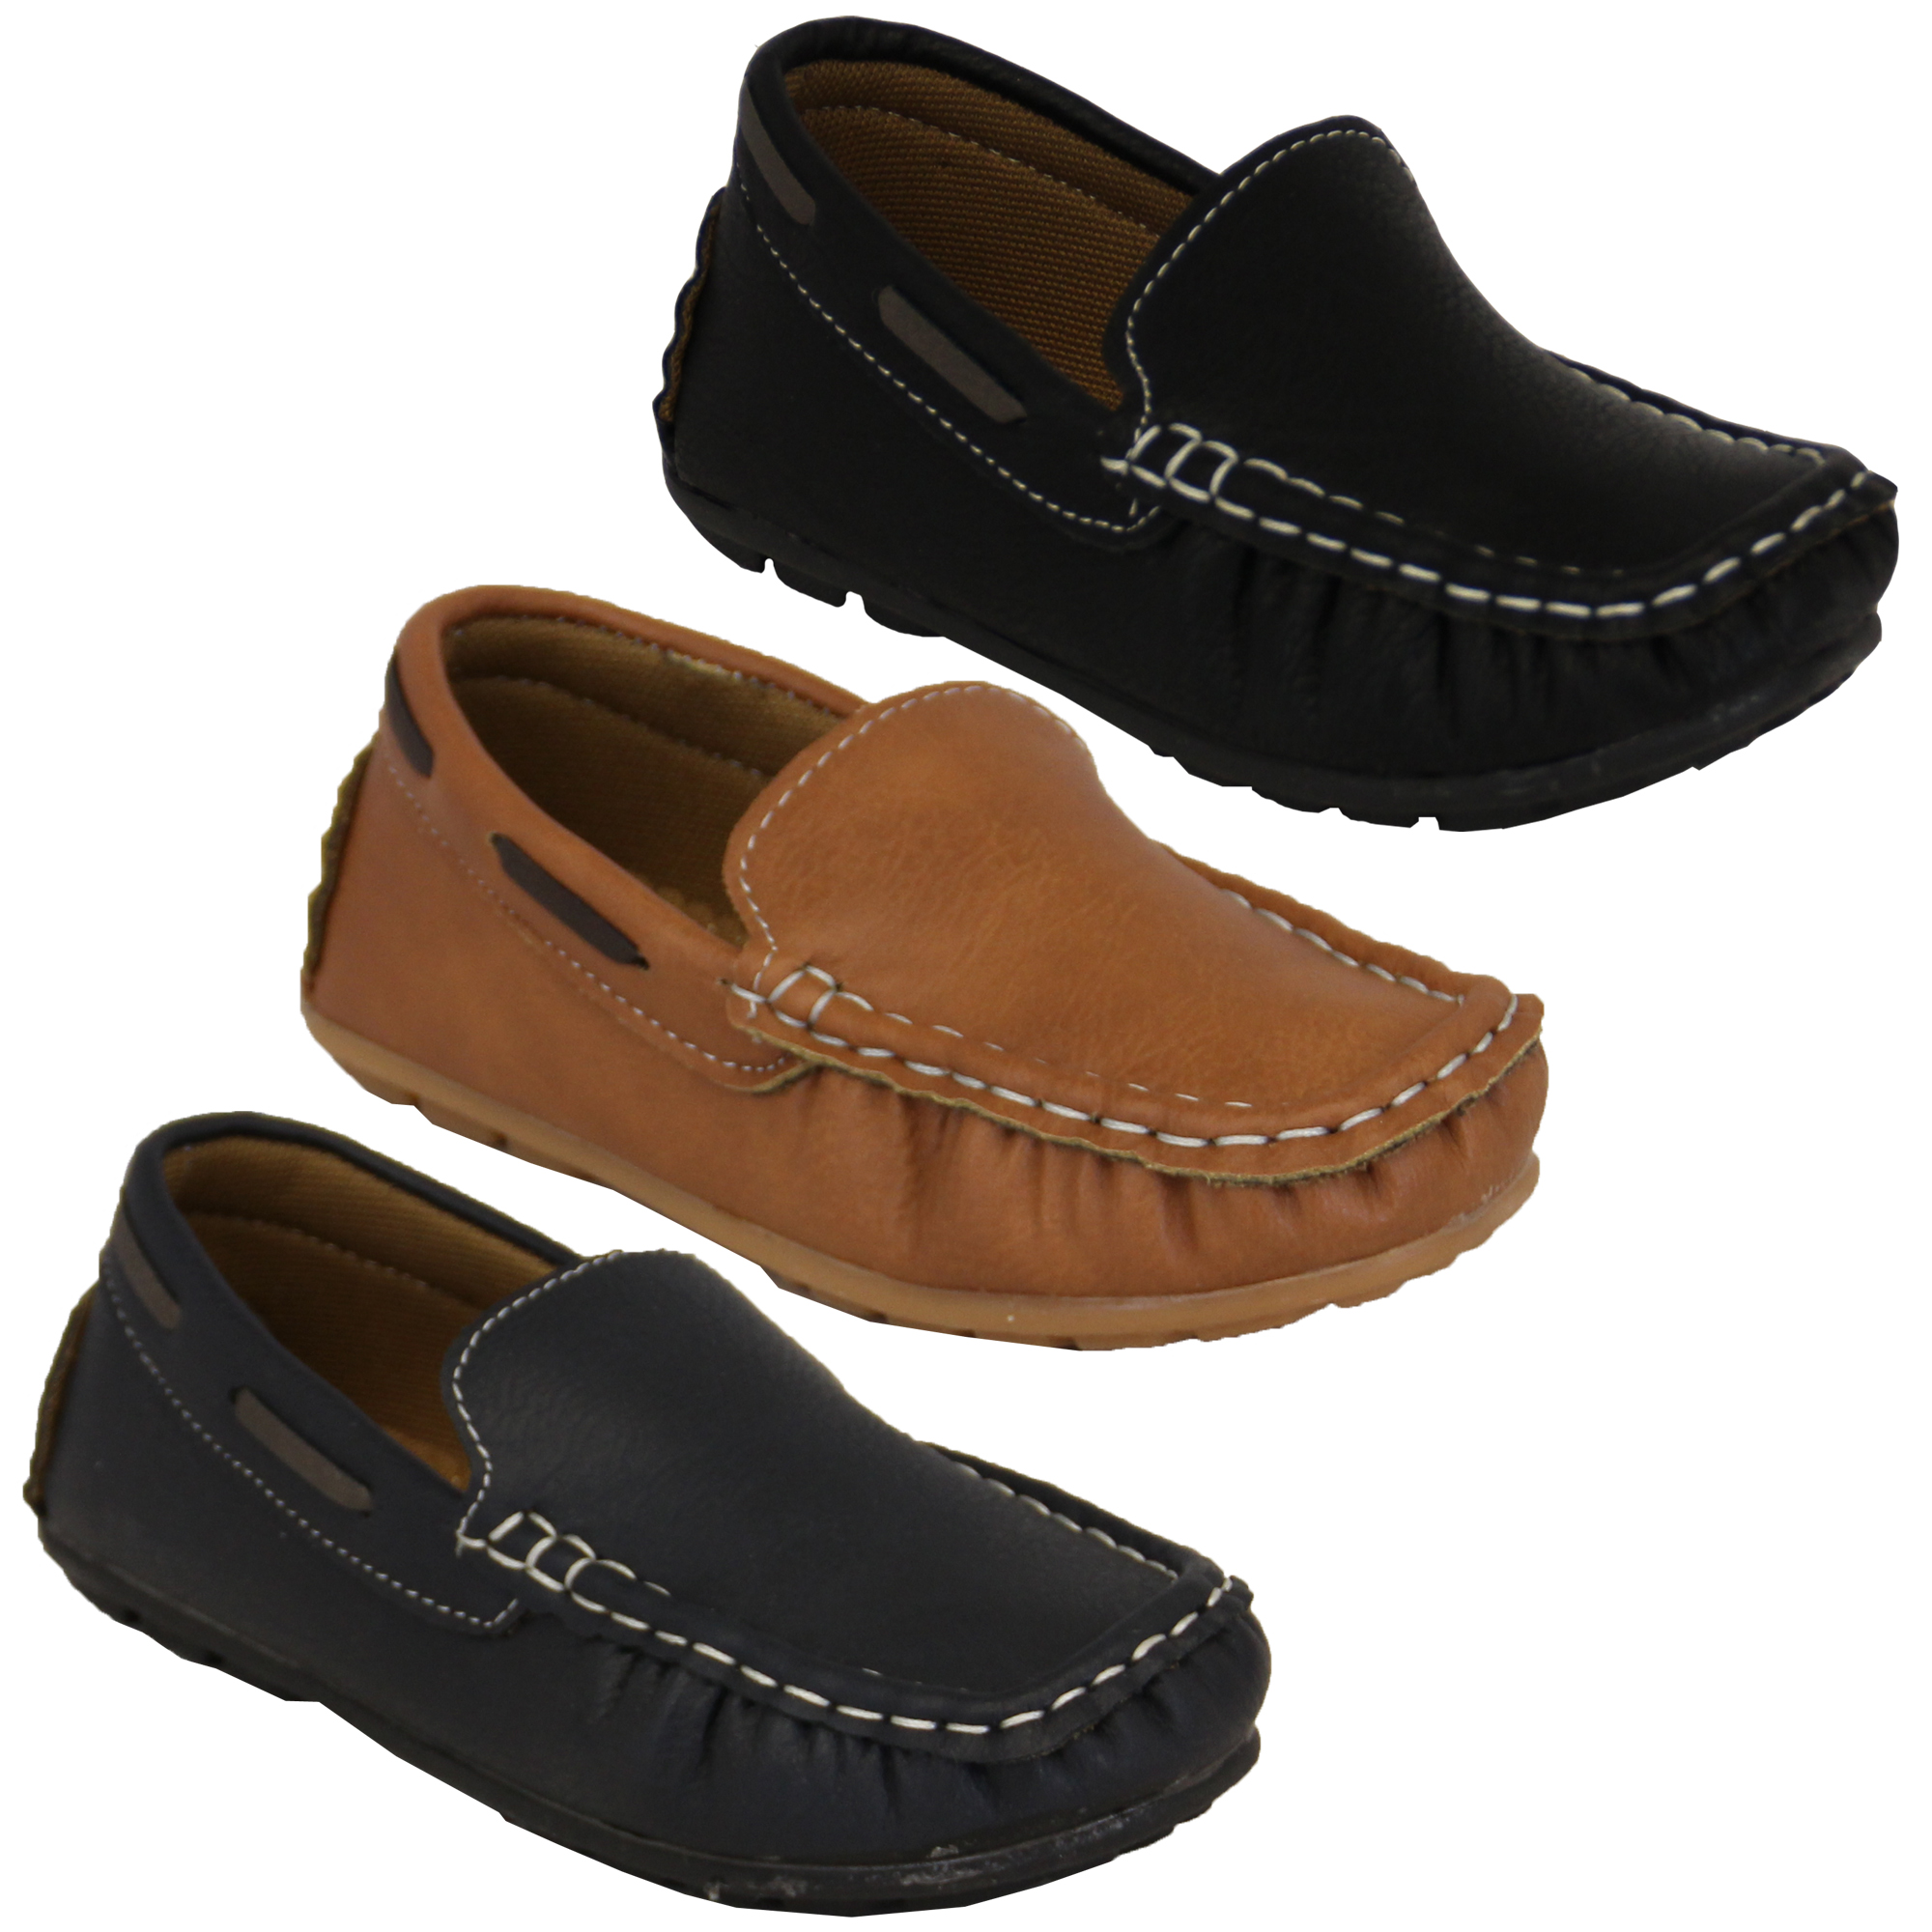 Shop boys moccasin shoes for kids and children's moccasin dress shoes at truedfil3gz.gq Enjoy free shipping on all orders!